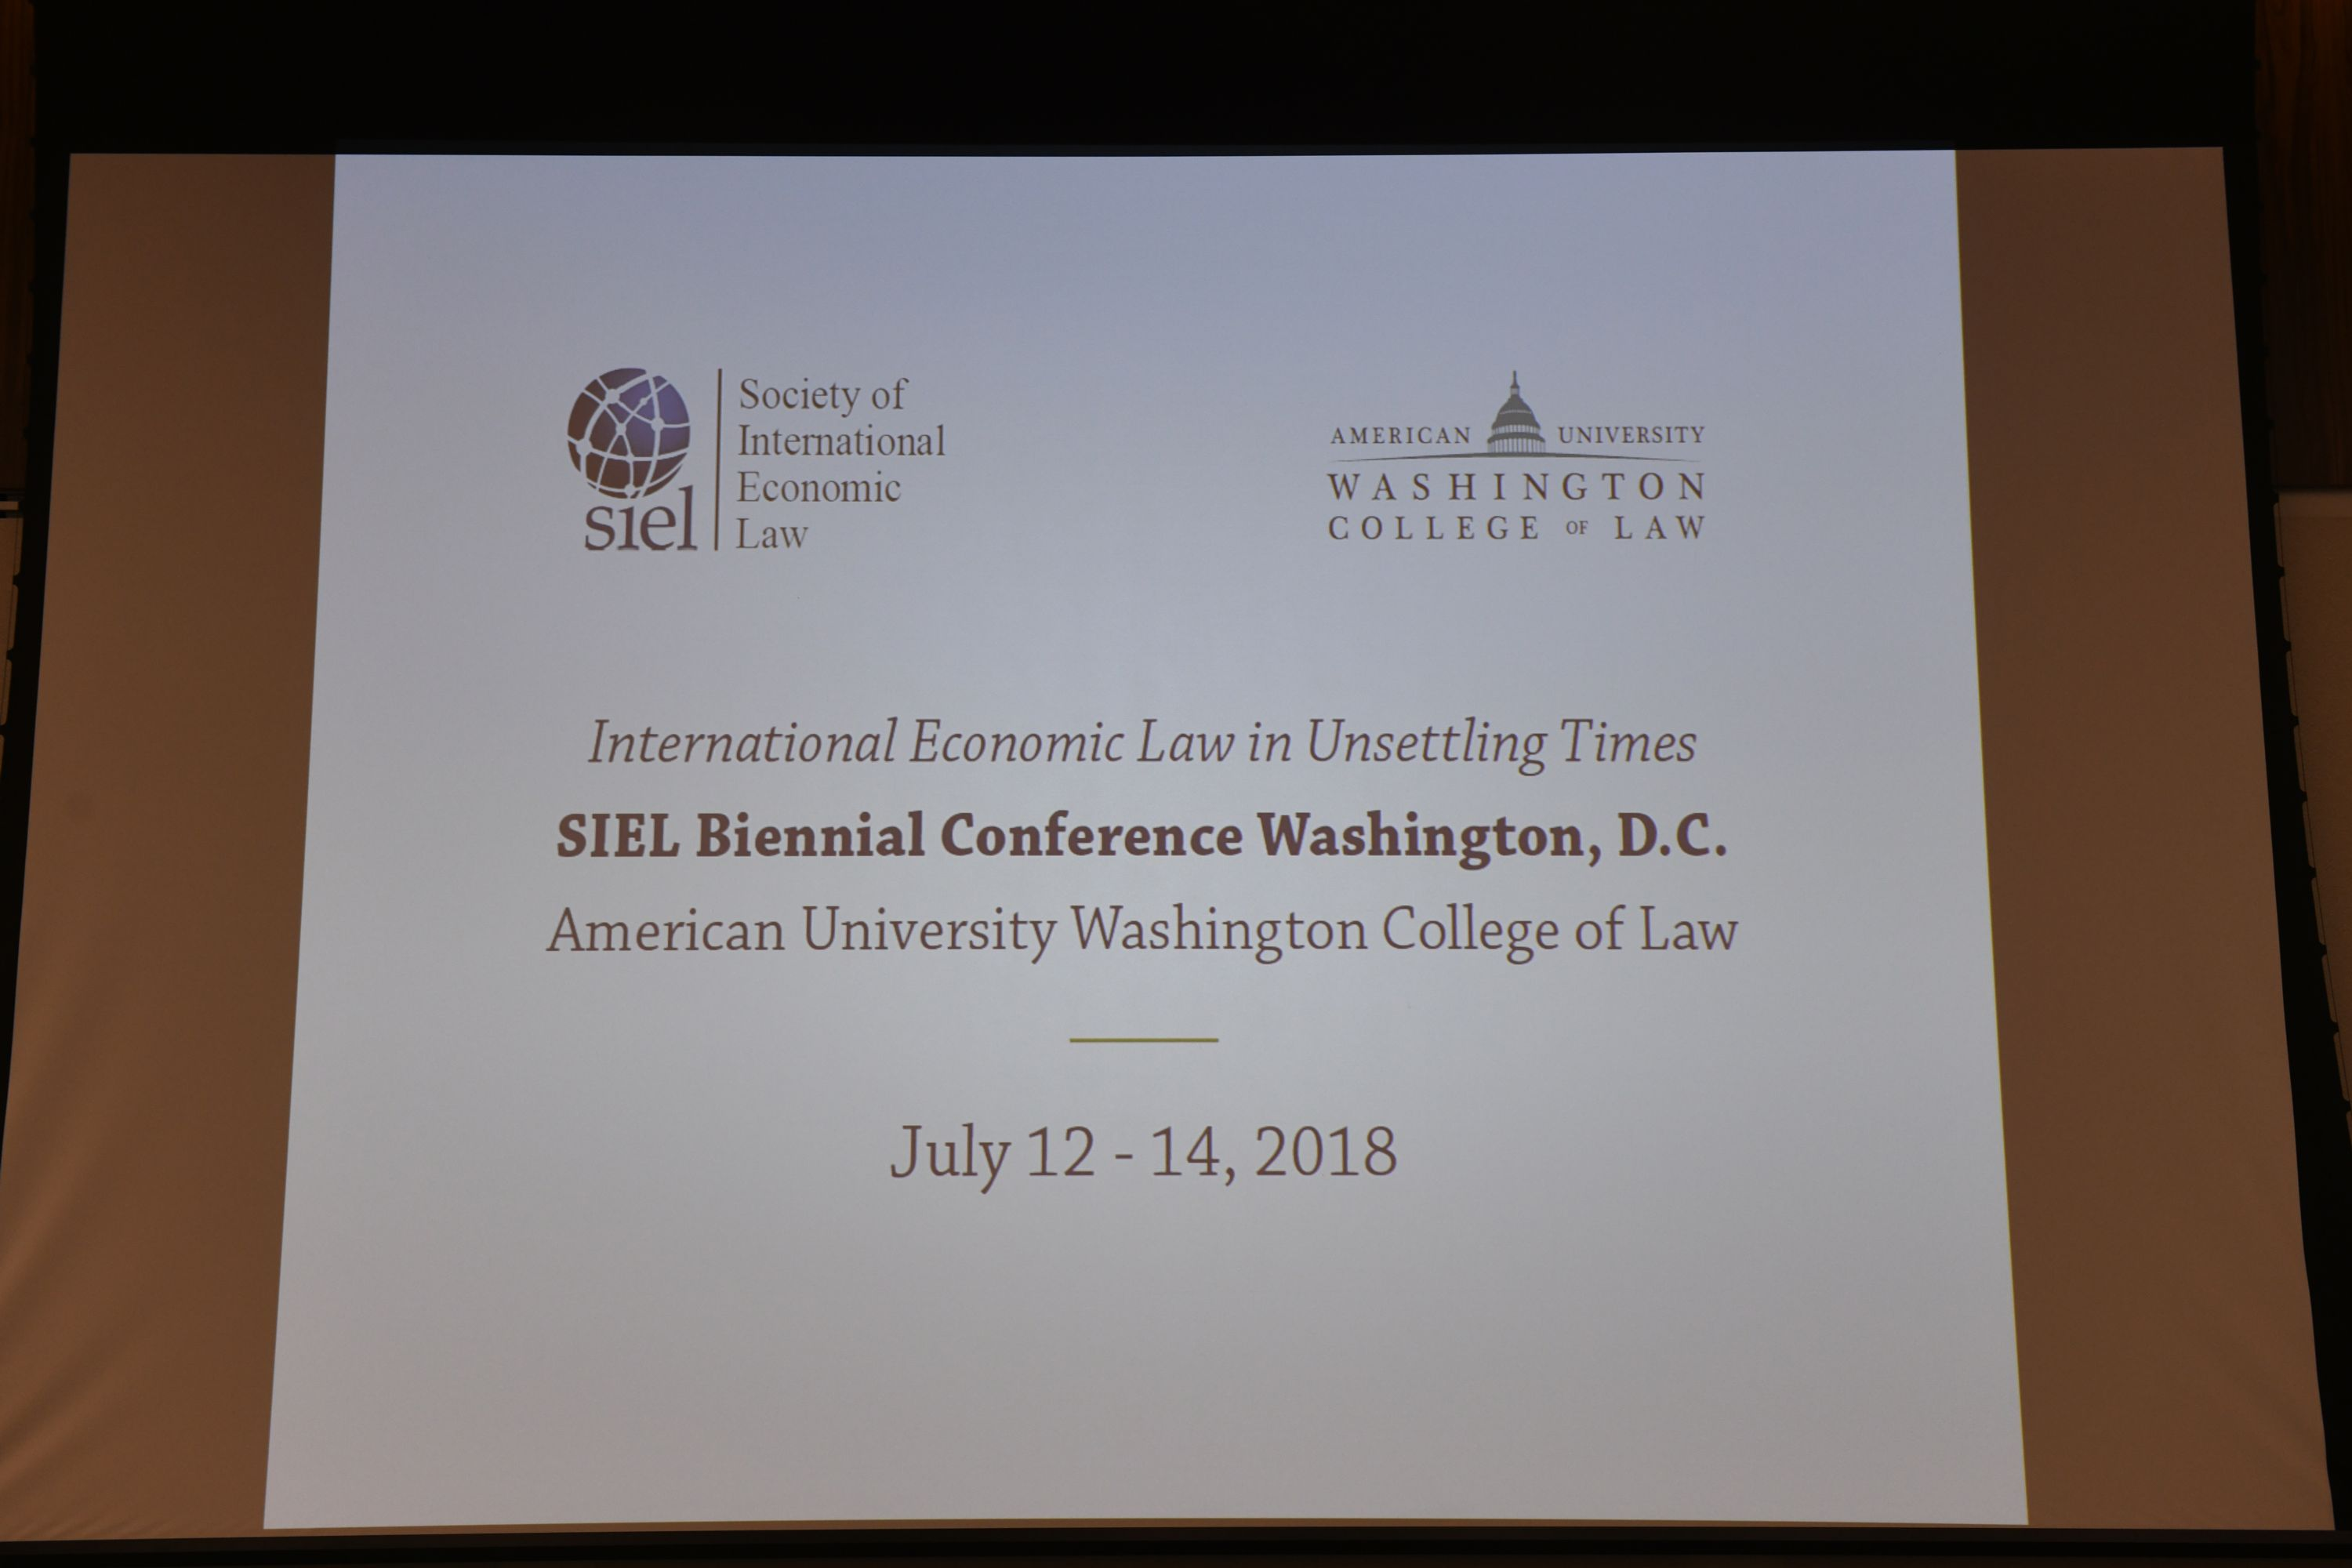 International Economic Law in Unsettling Times - SIEL Biennial Global Conference Washington, DC